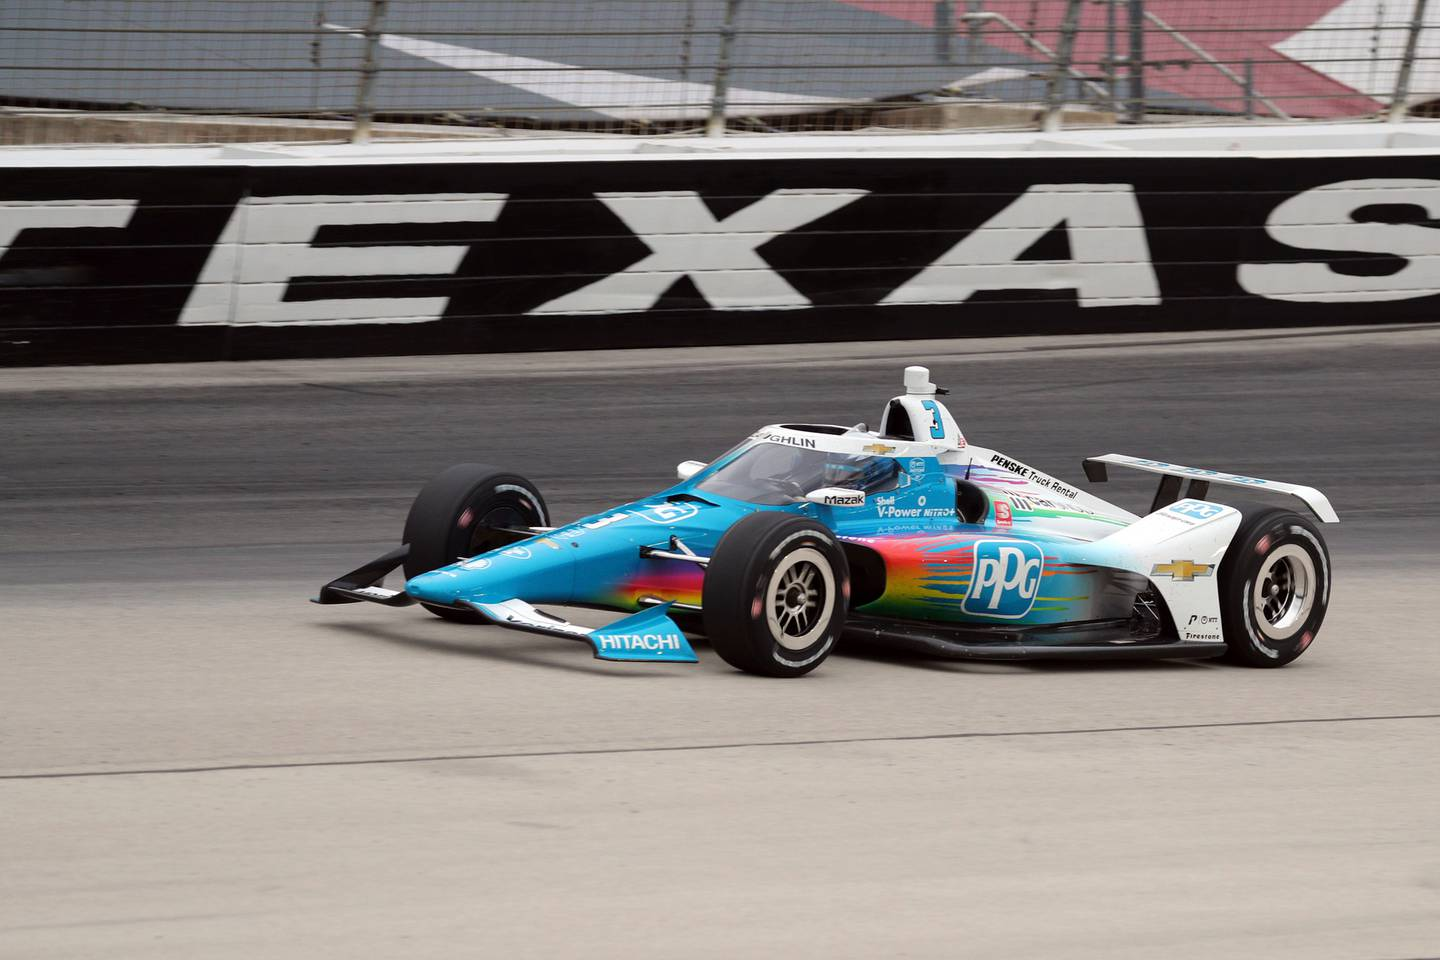 Scott McLaughlin drives out of Turn 4 during the IndyCar Series auto race at Texas Motor Speedway. Photo / AP